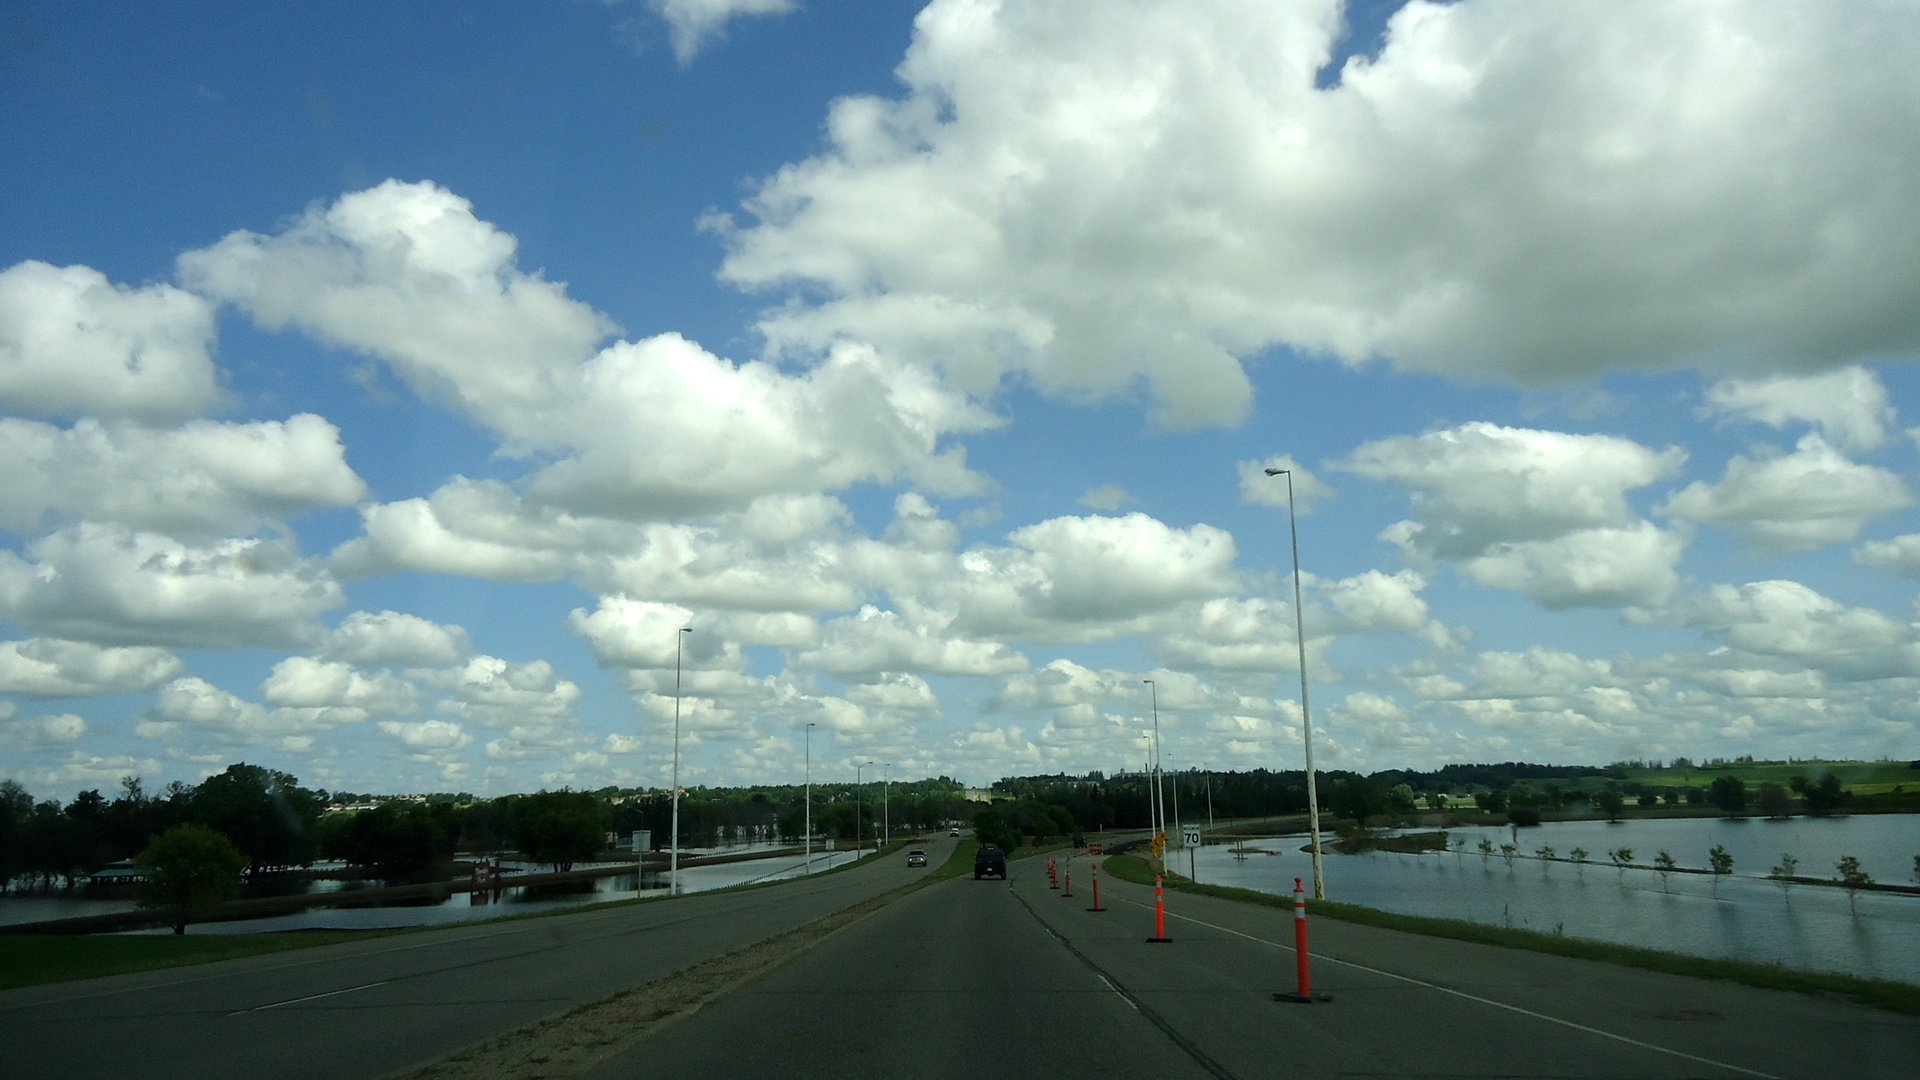 Excessive rainfall over southwestern Manitoba this summer resulted in significant flooding along the Assiniboine river. Brandon, MB – pictured above – was one of many communities hit hard by the widespread flooding.